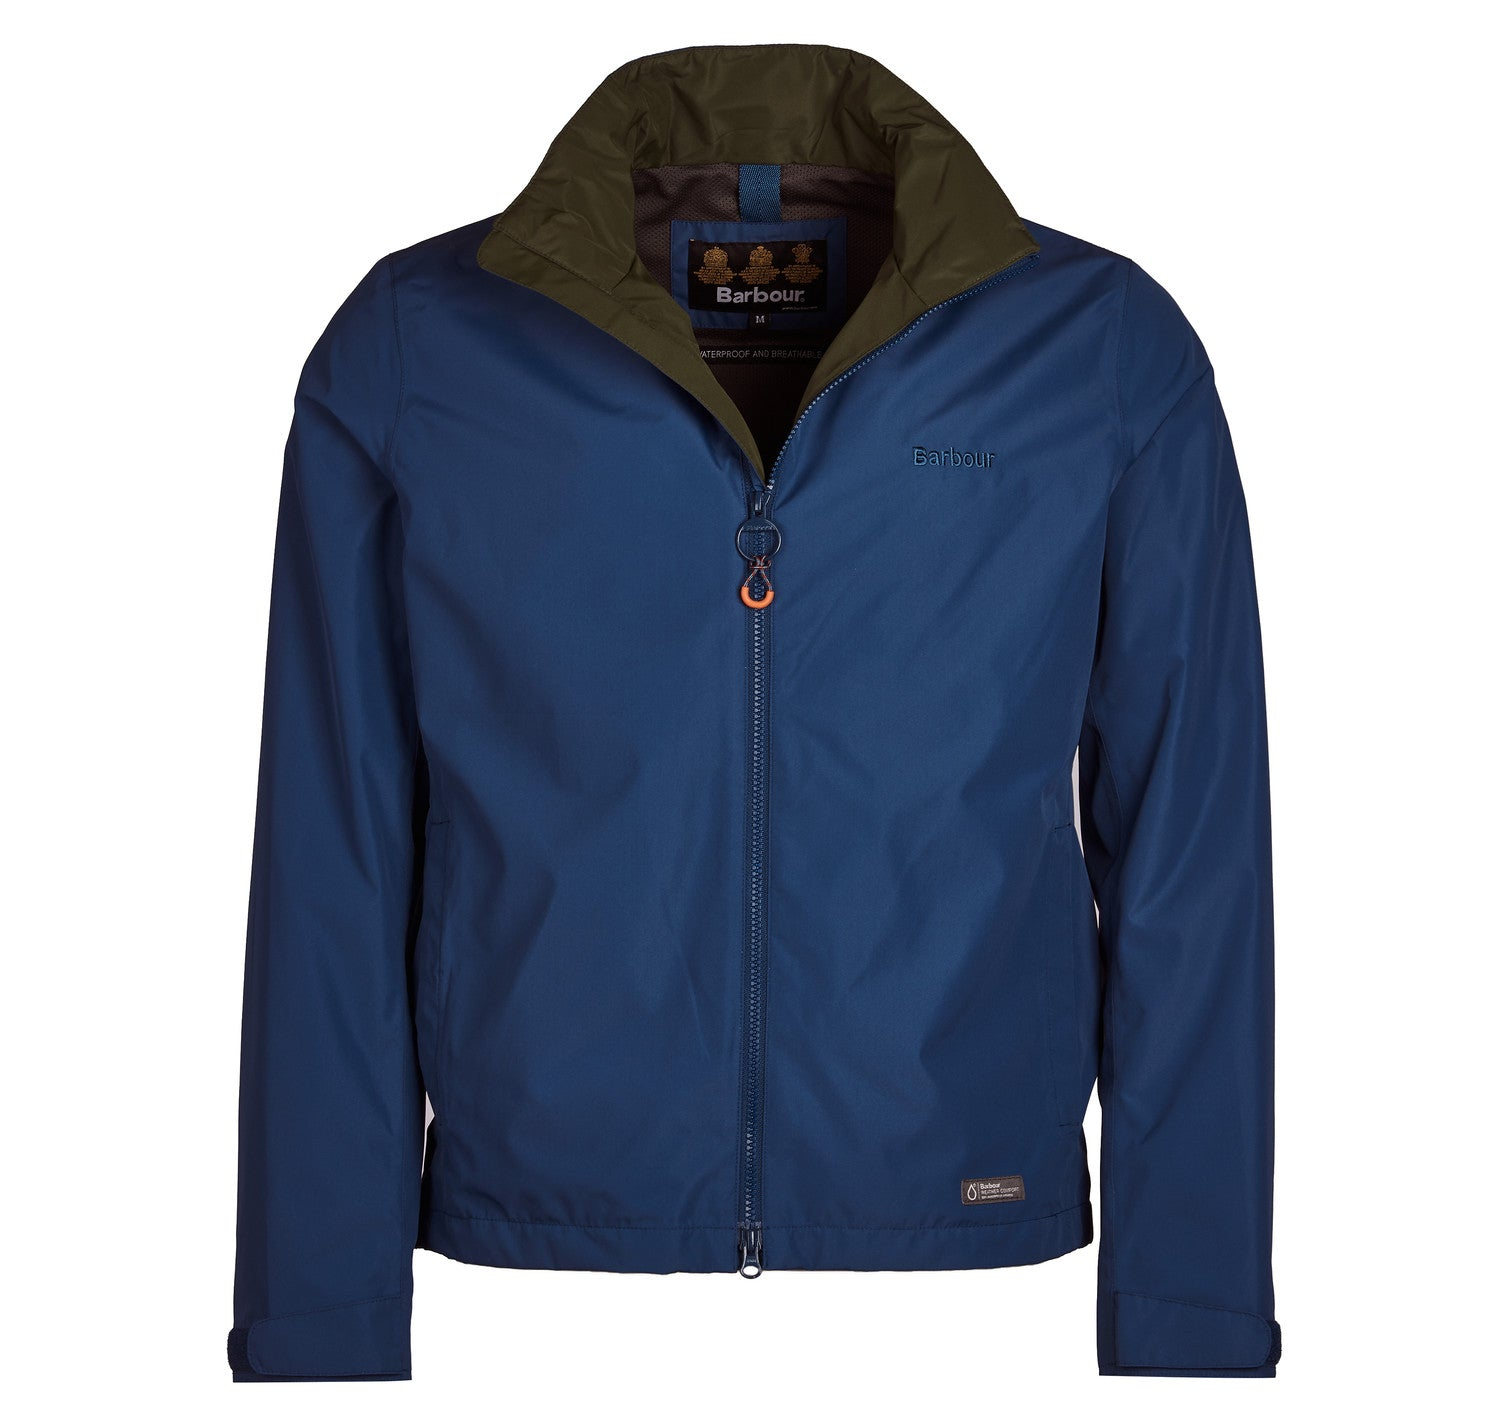 Barbour Rye Waterproof Jacket for Men in Peacock Blue